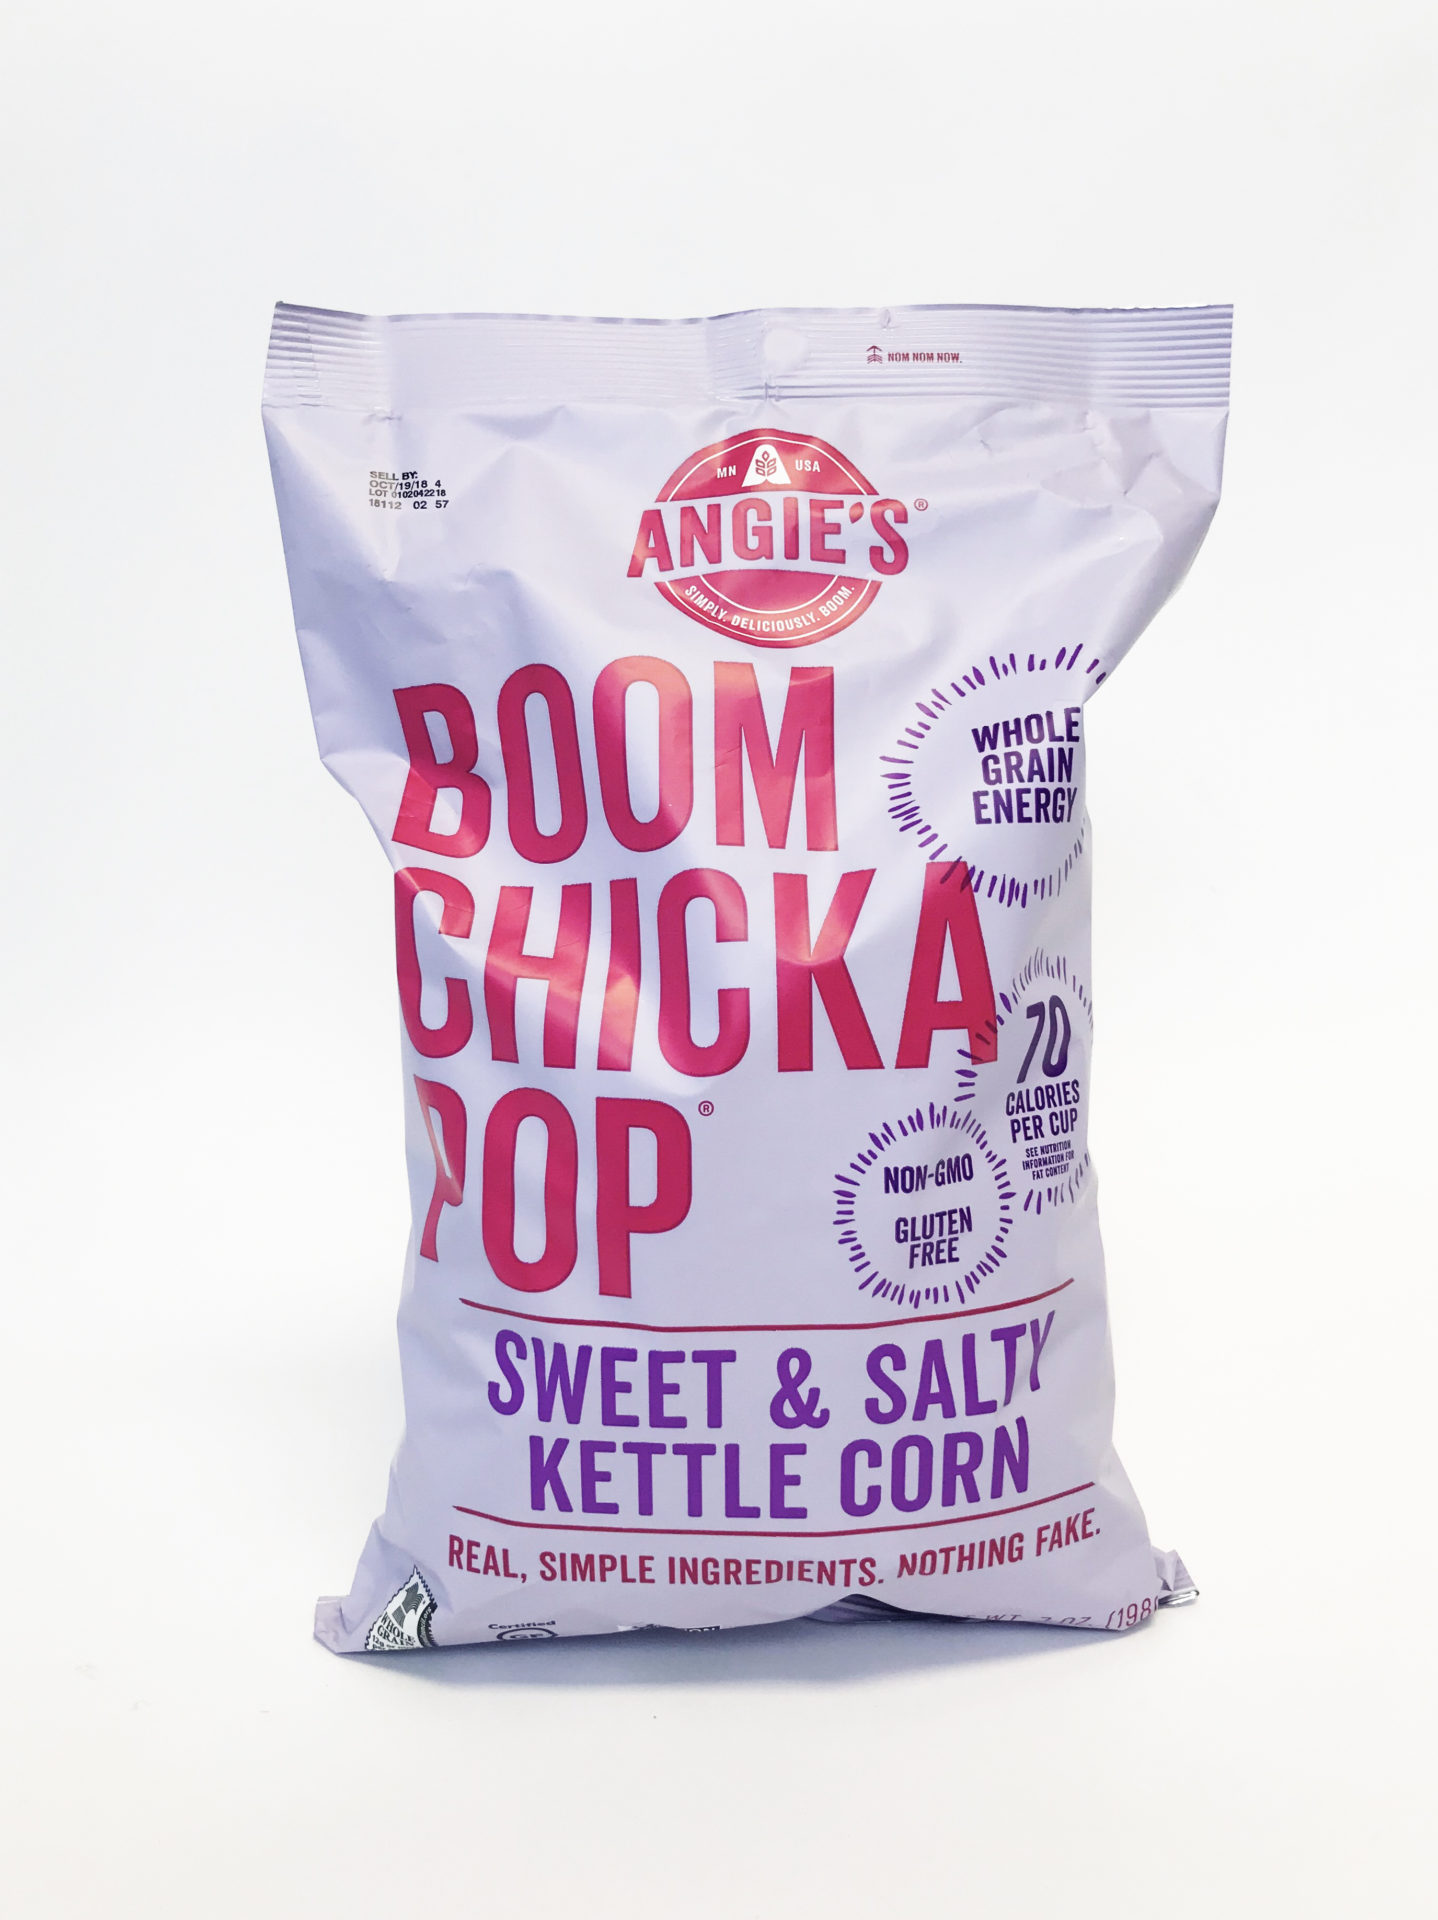 Boom Chicka Pop Sweet&Salty Kettle Corn